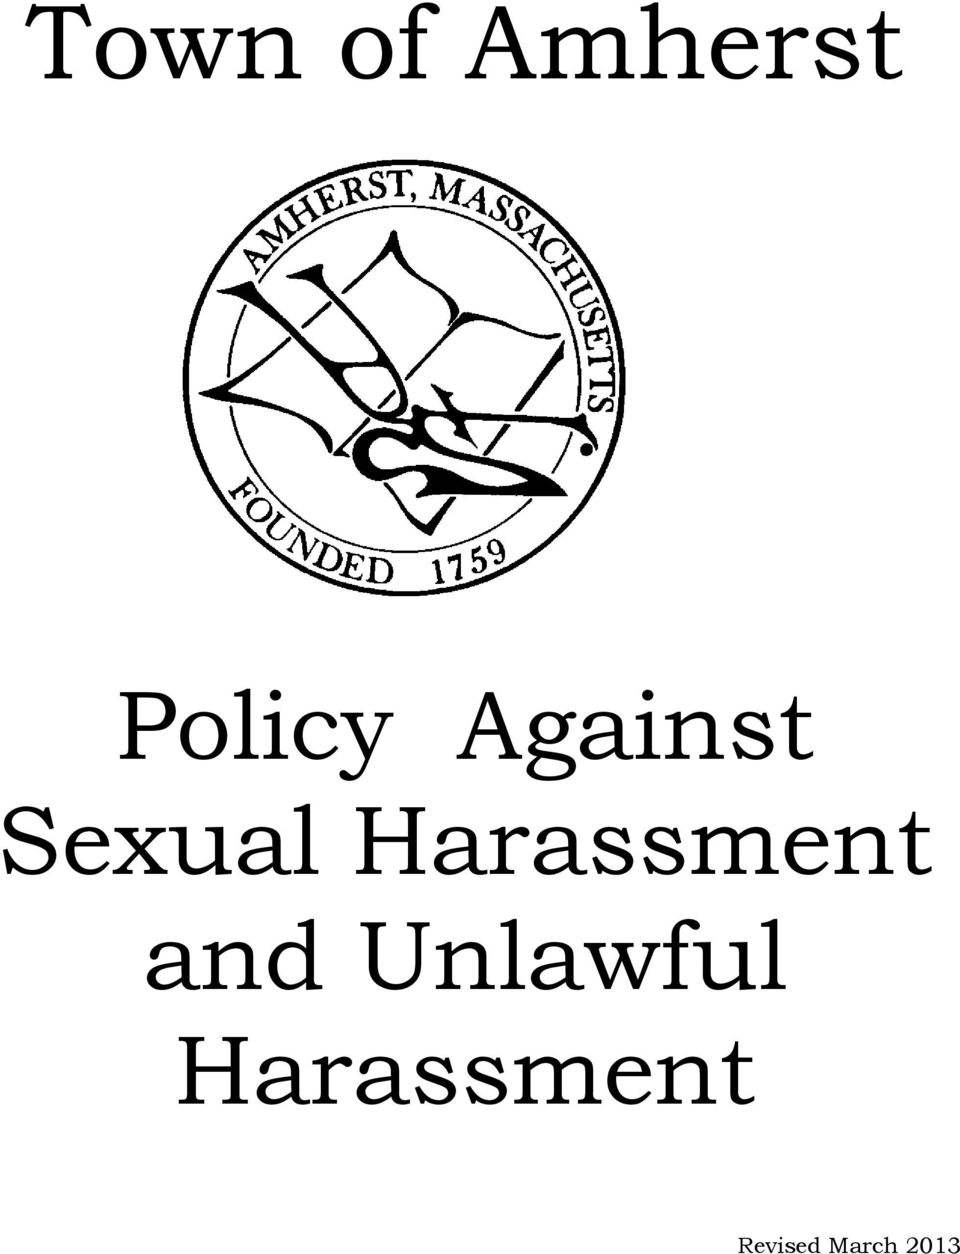 Harassment and